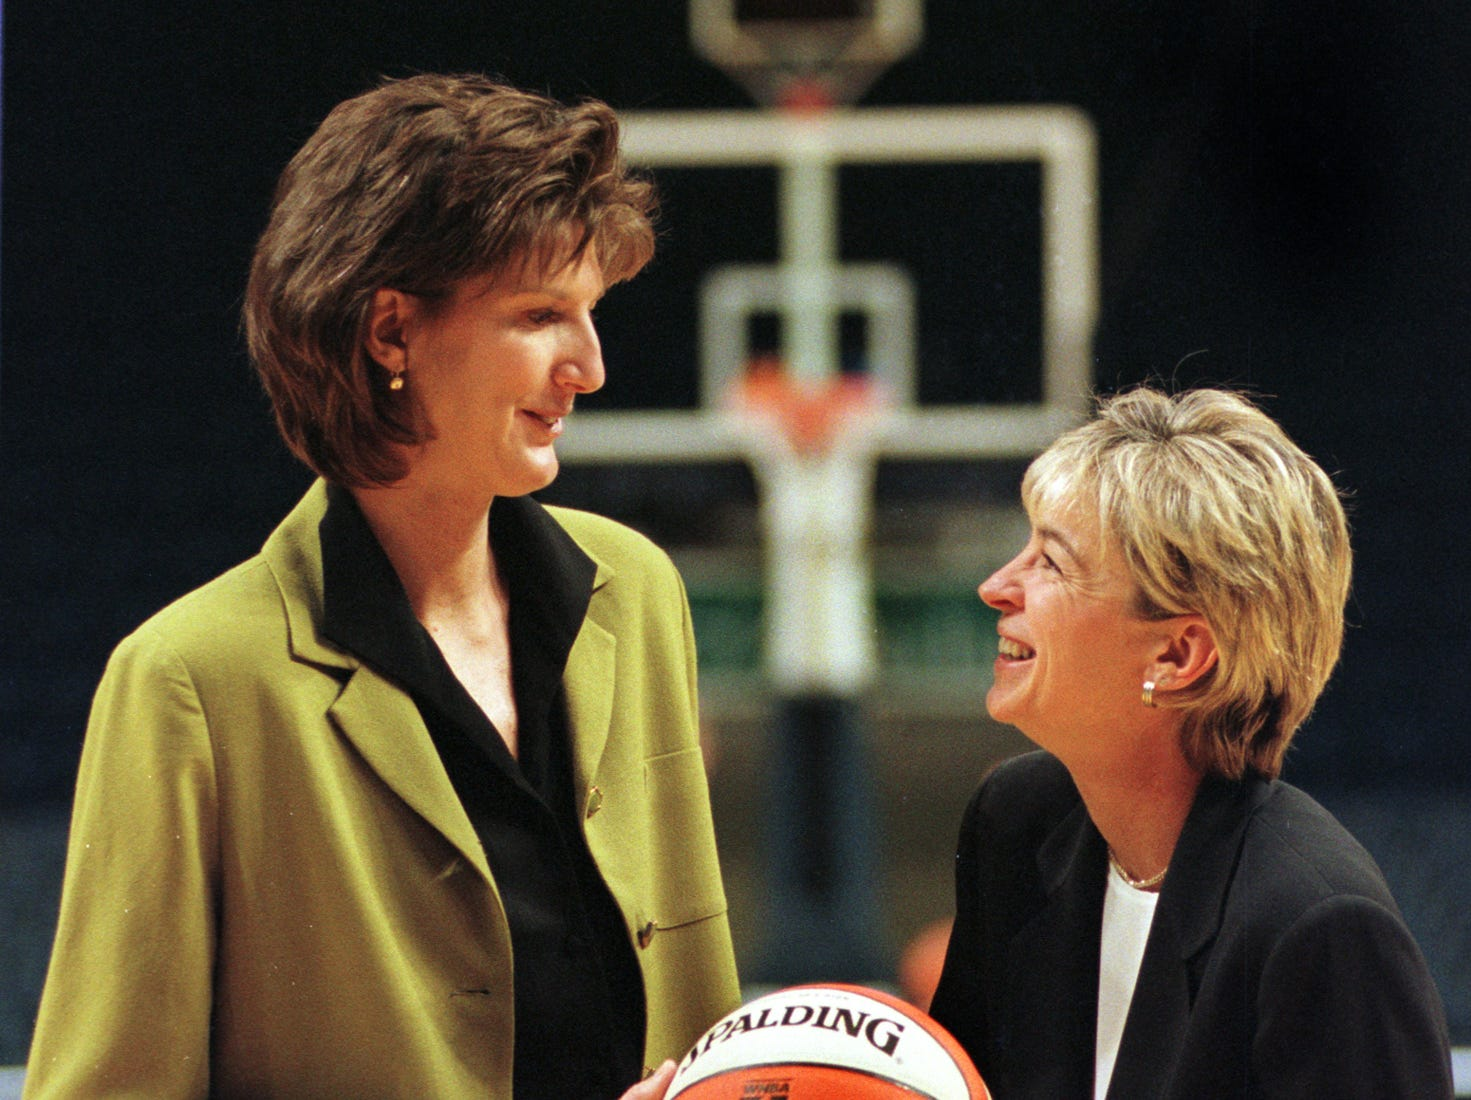 Anne Donovan (left) jokes with Nell Fortner (right), at Market Square Arena, Wednesday, October 20, 1999, while being photographed by the press. Donovan was named today as the interim coach for IndianaÕs WNBA expansion team.  She will be that coach when it begins its season in the summer of 2000.